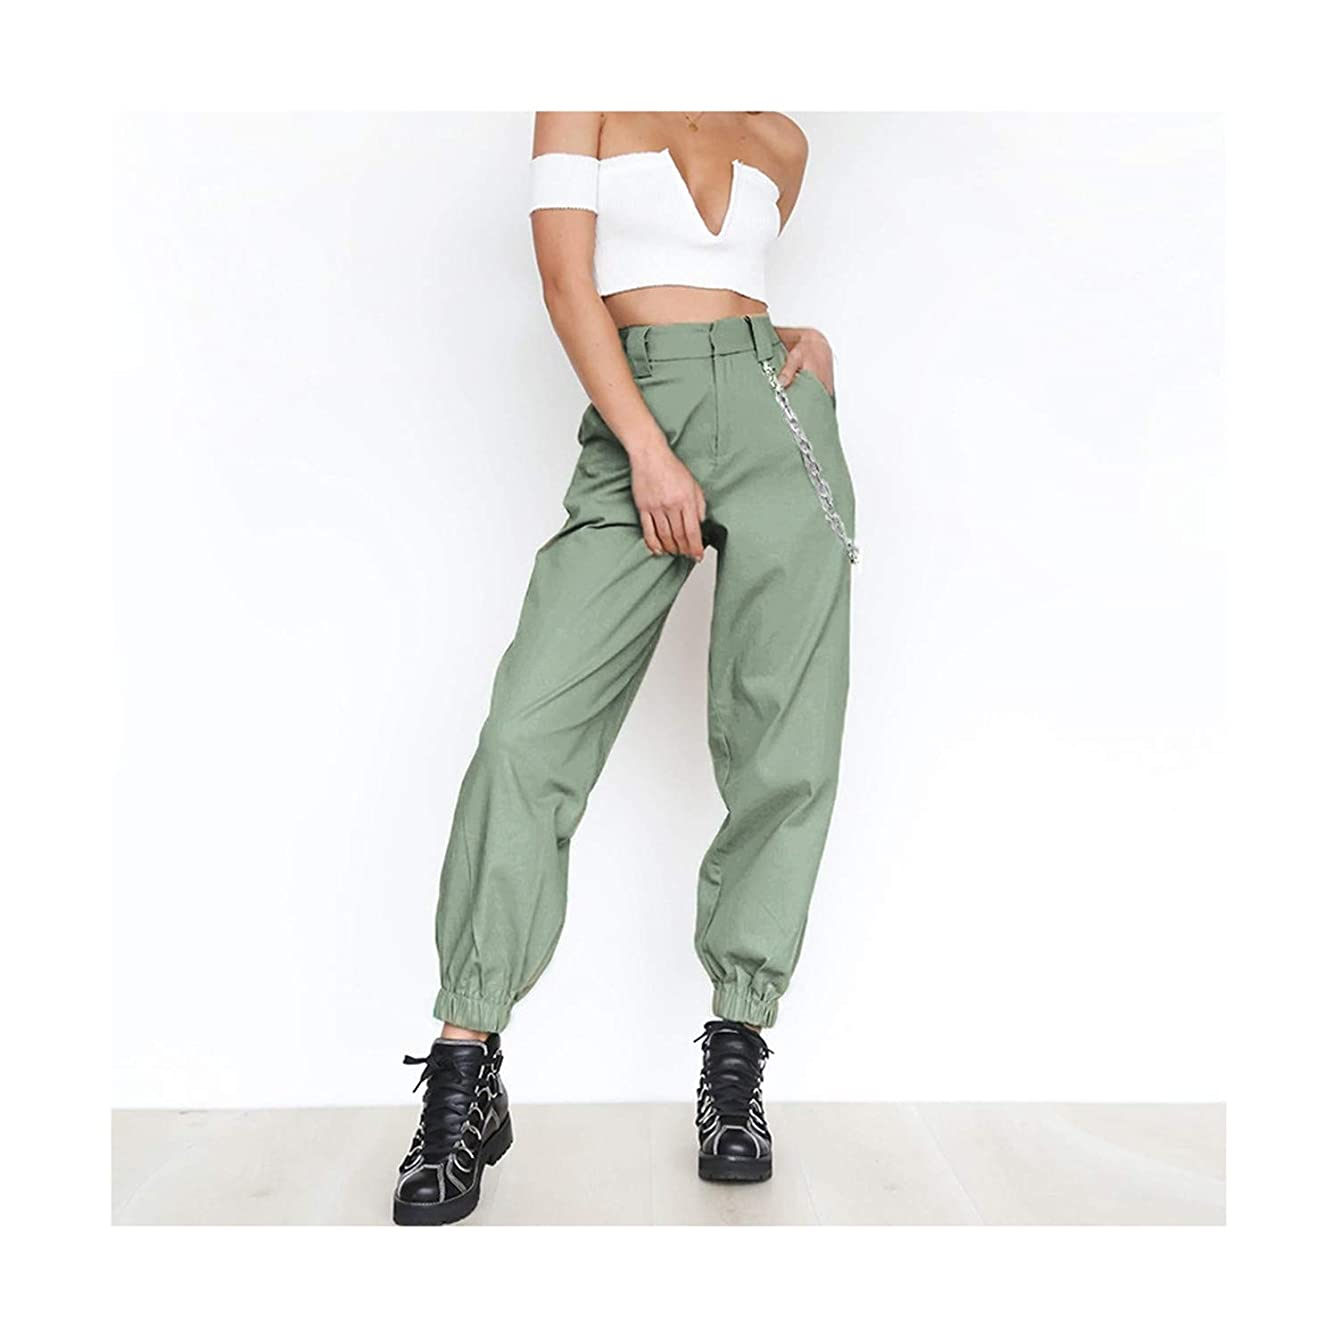 Cargo Elasticated Trousers Women Link Chain Street Wear Trousers Loose Women Moto Joggers High Waist Pants Sweatpants